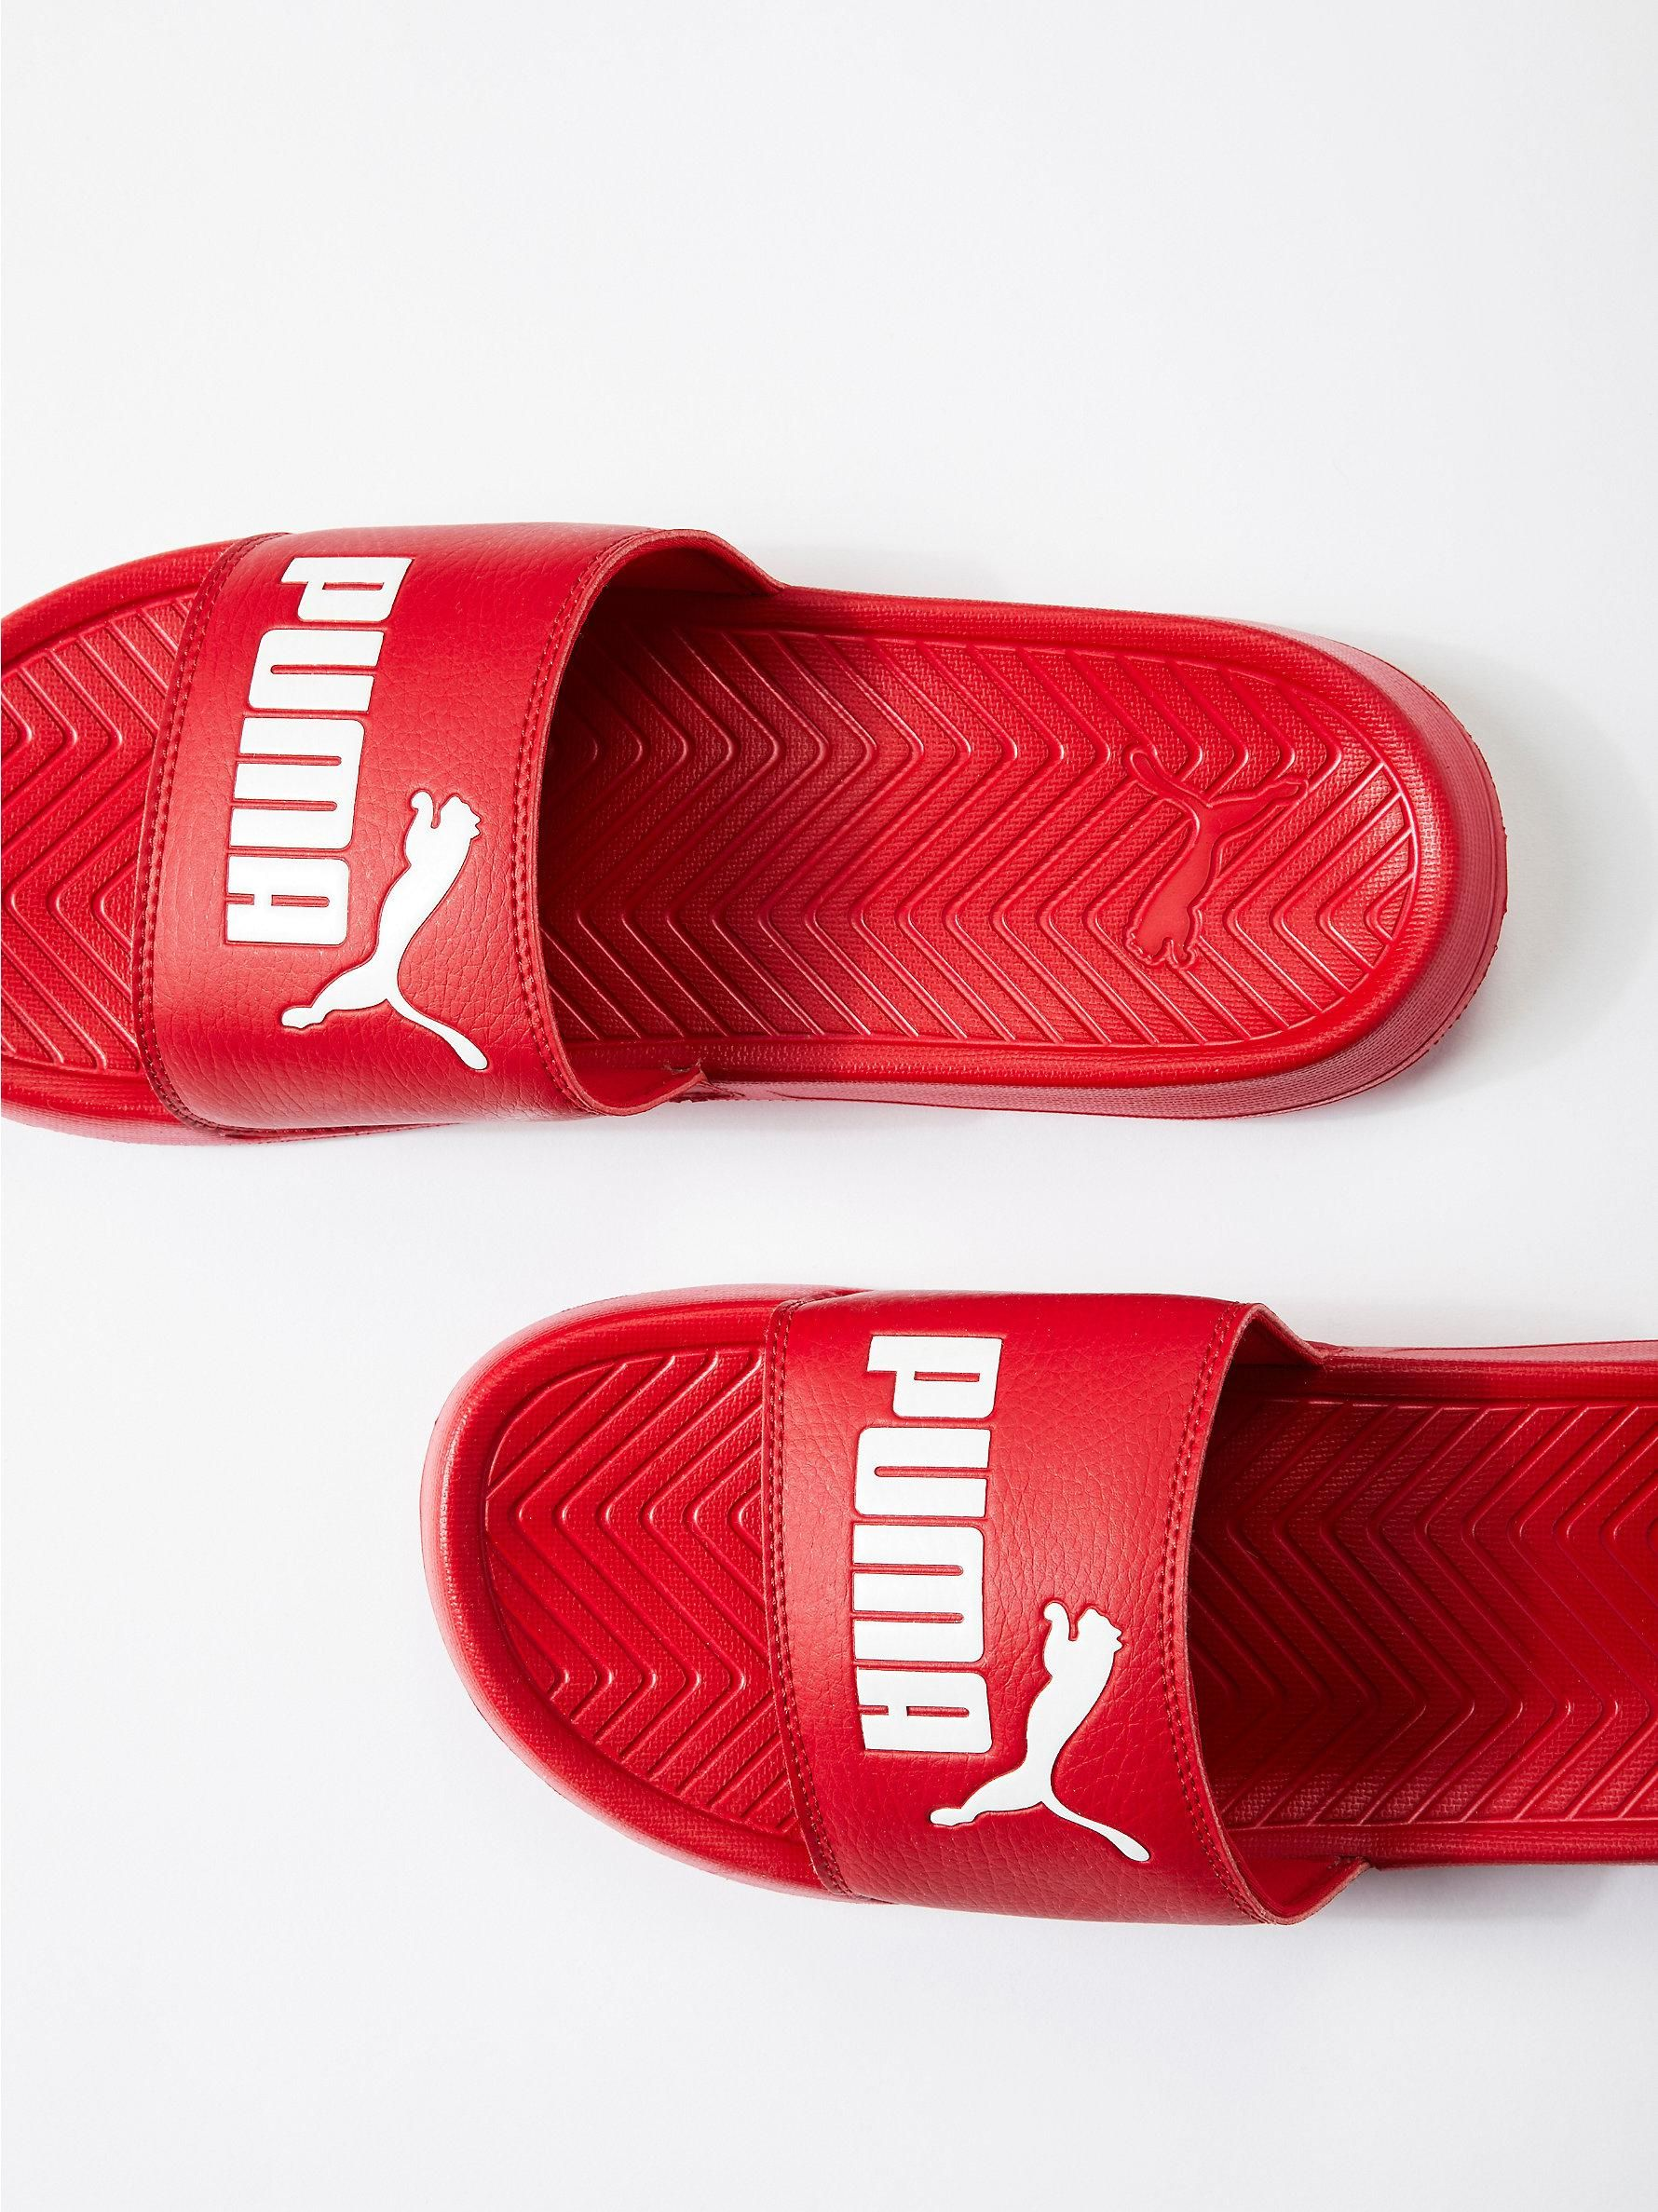 Cushioned shoes, Padded sandals, Slide